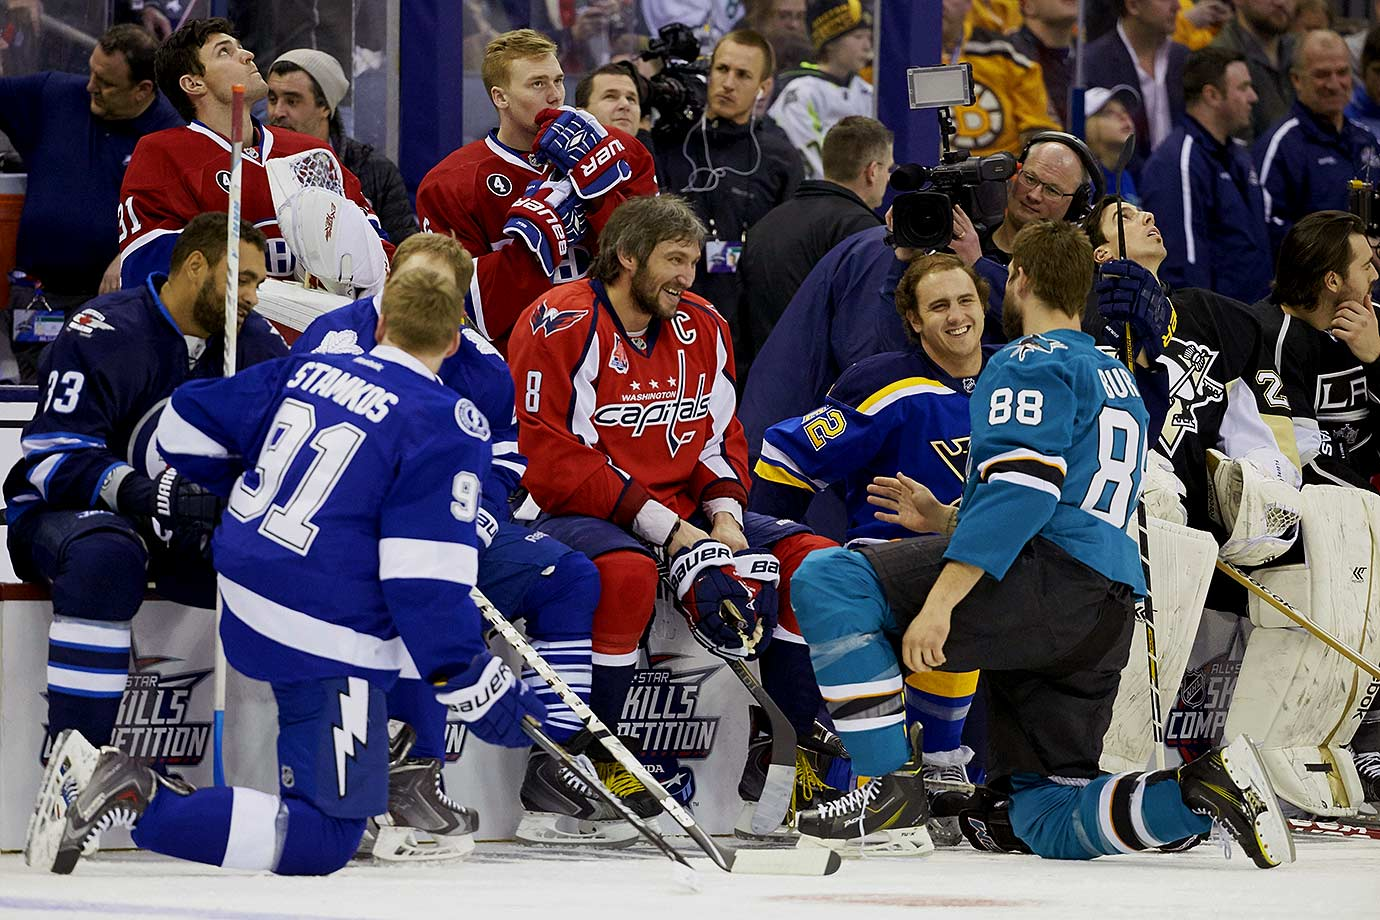 January 24, 2015 — NHL All-Star SuperSkills Competition